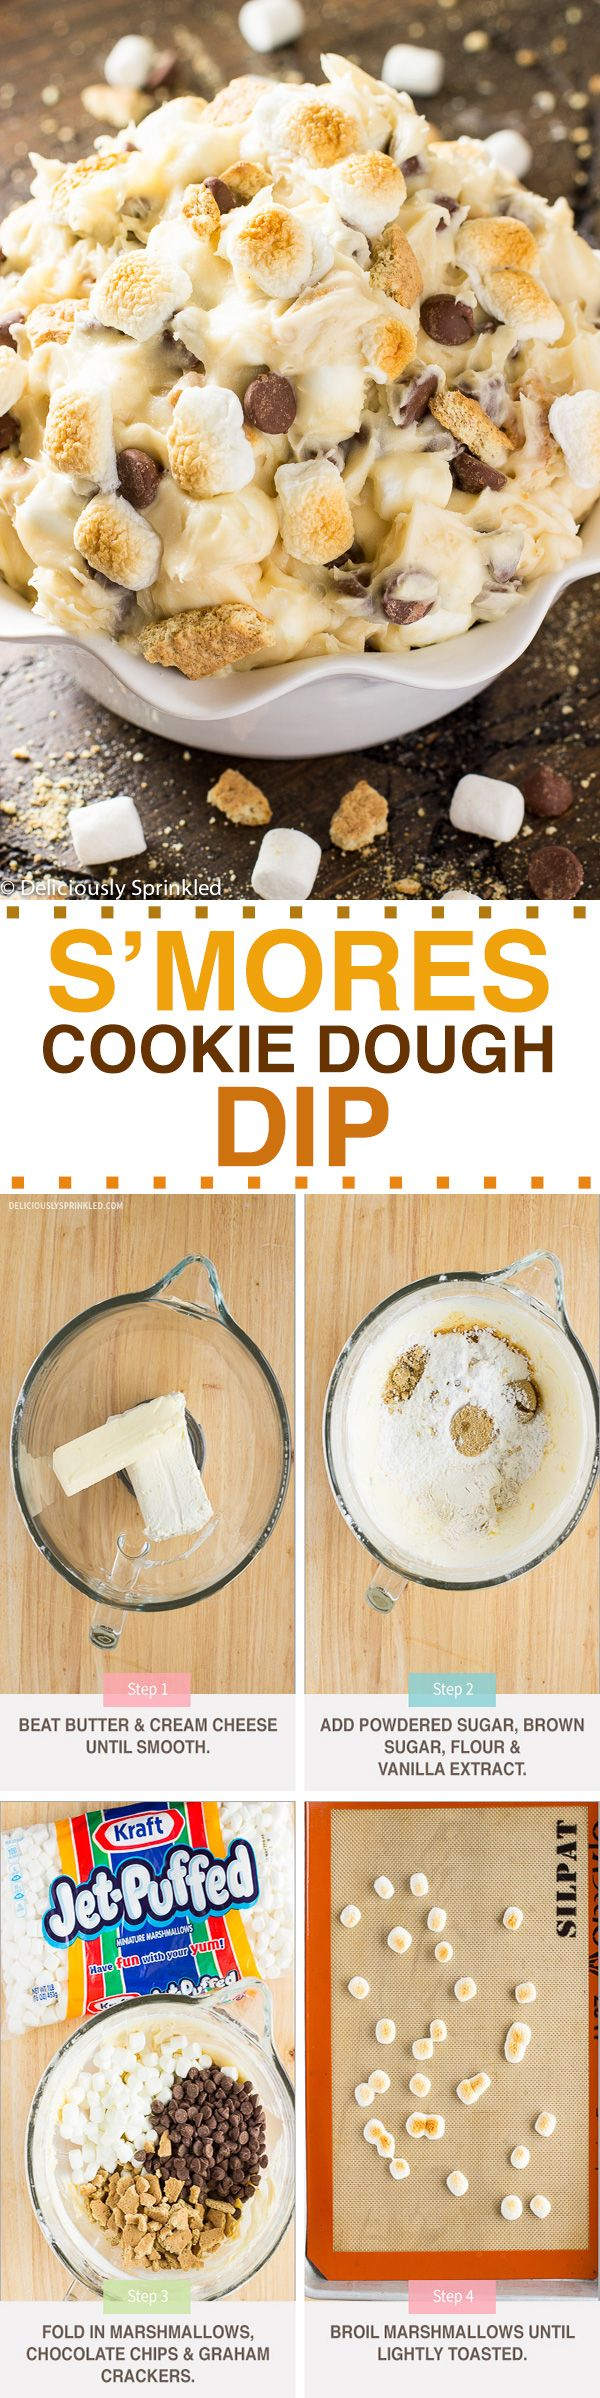 S'mores Cookie Dough Dip  @kraftjetpuffed #JetPuffed #JetPuffedBlogger #ad